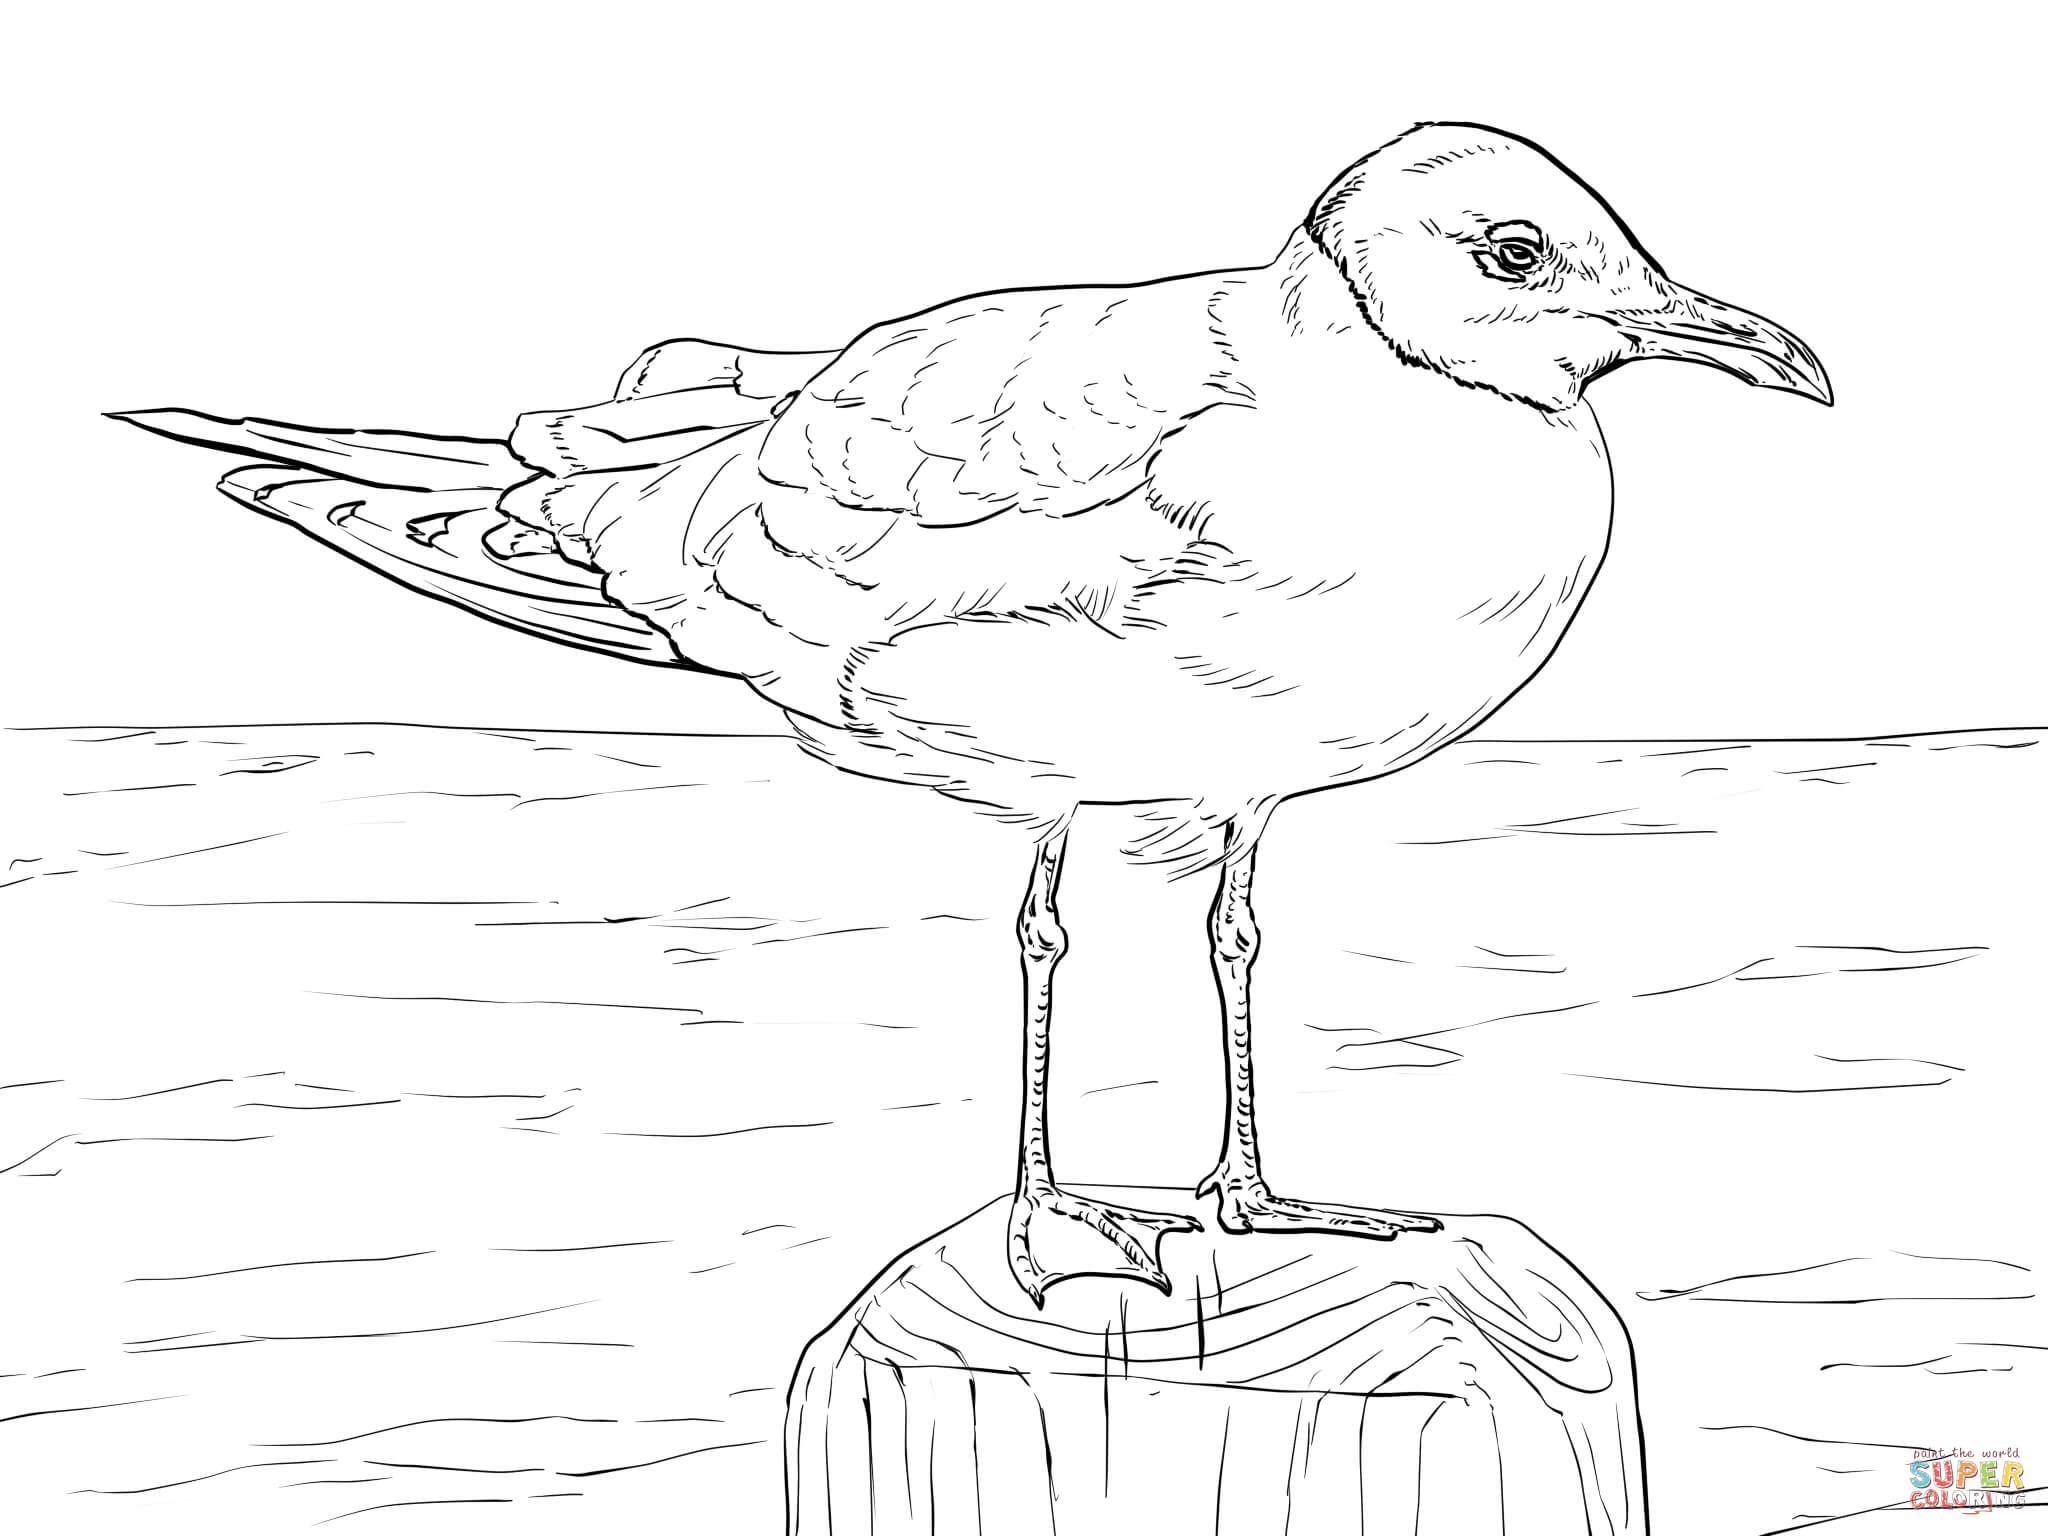 Laughing Gull Coloring Page